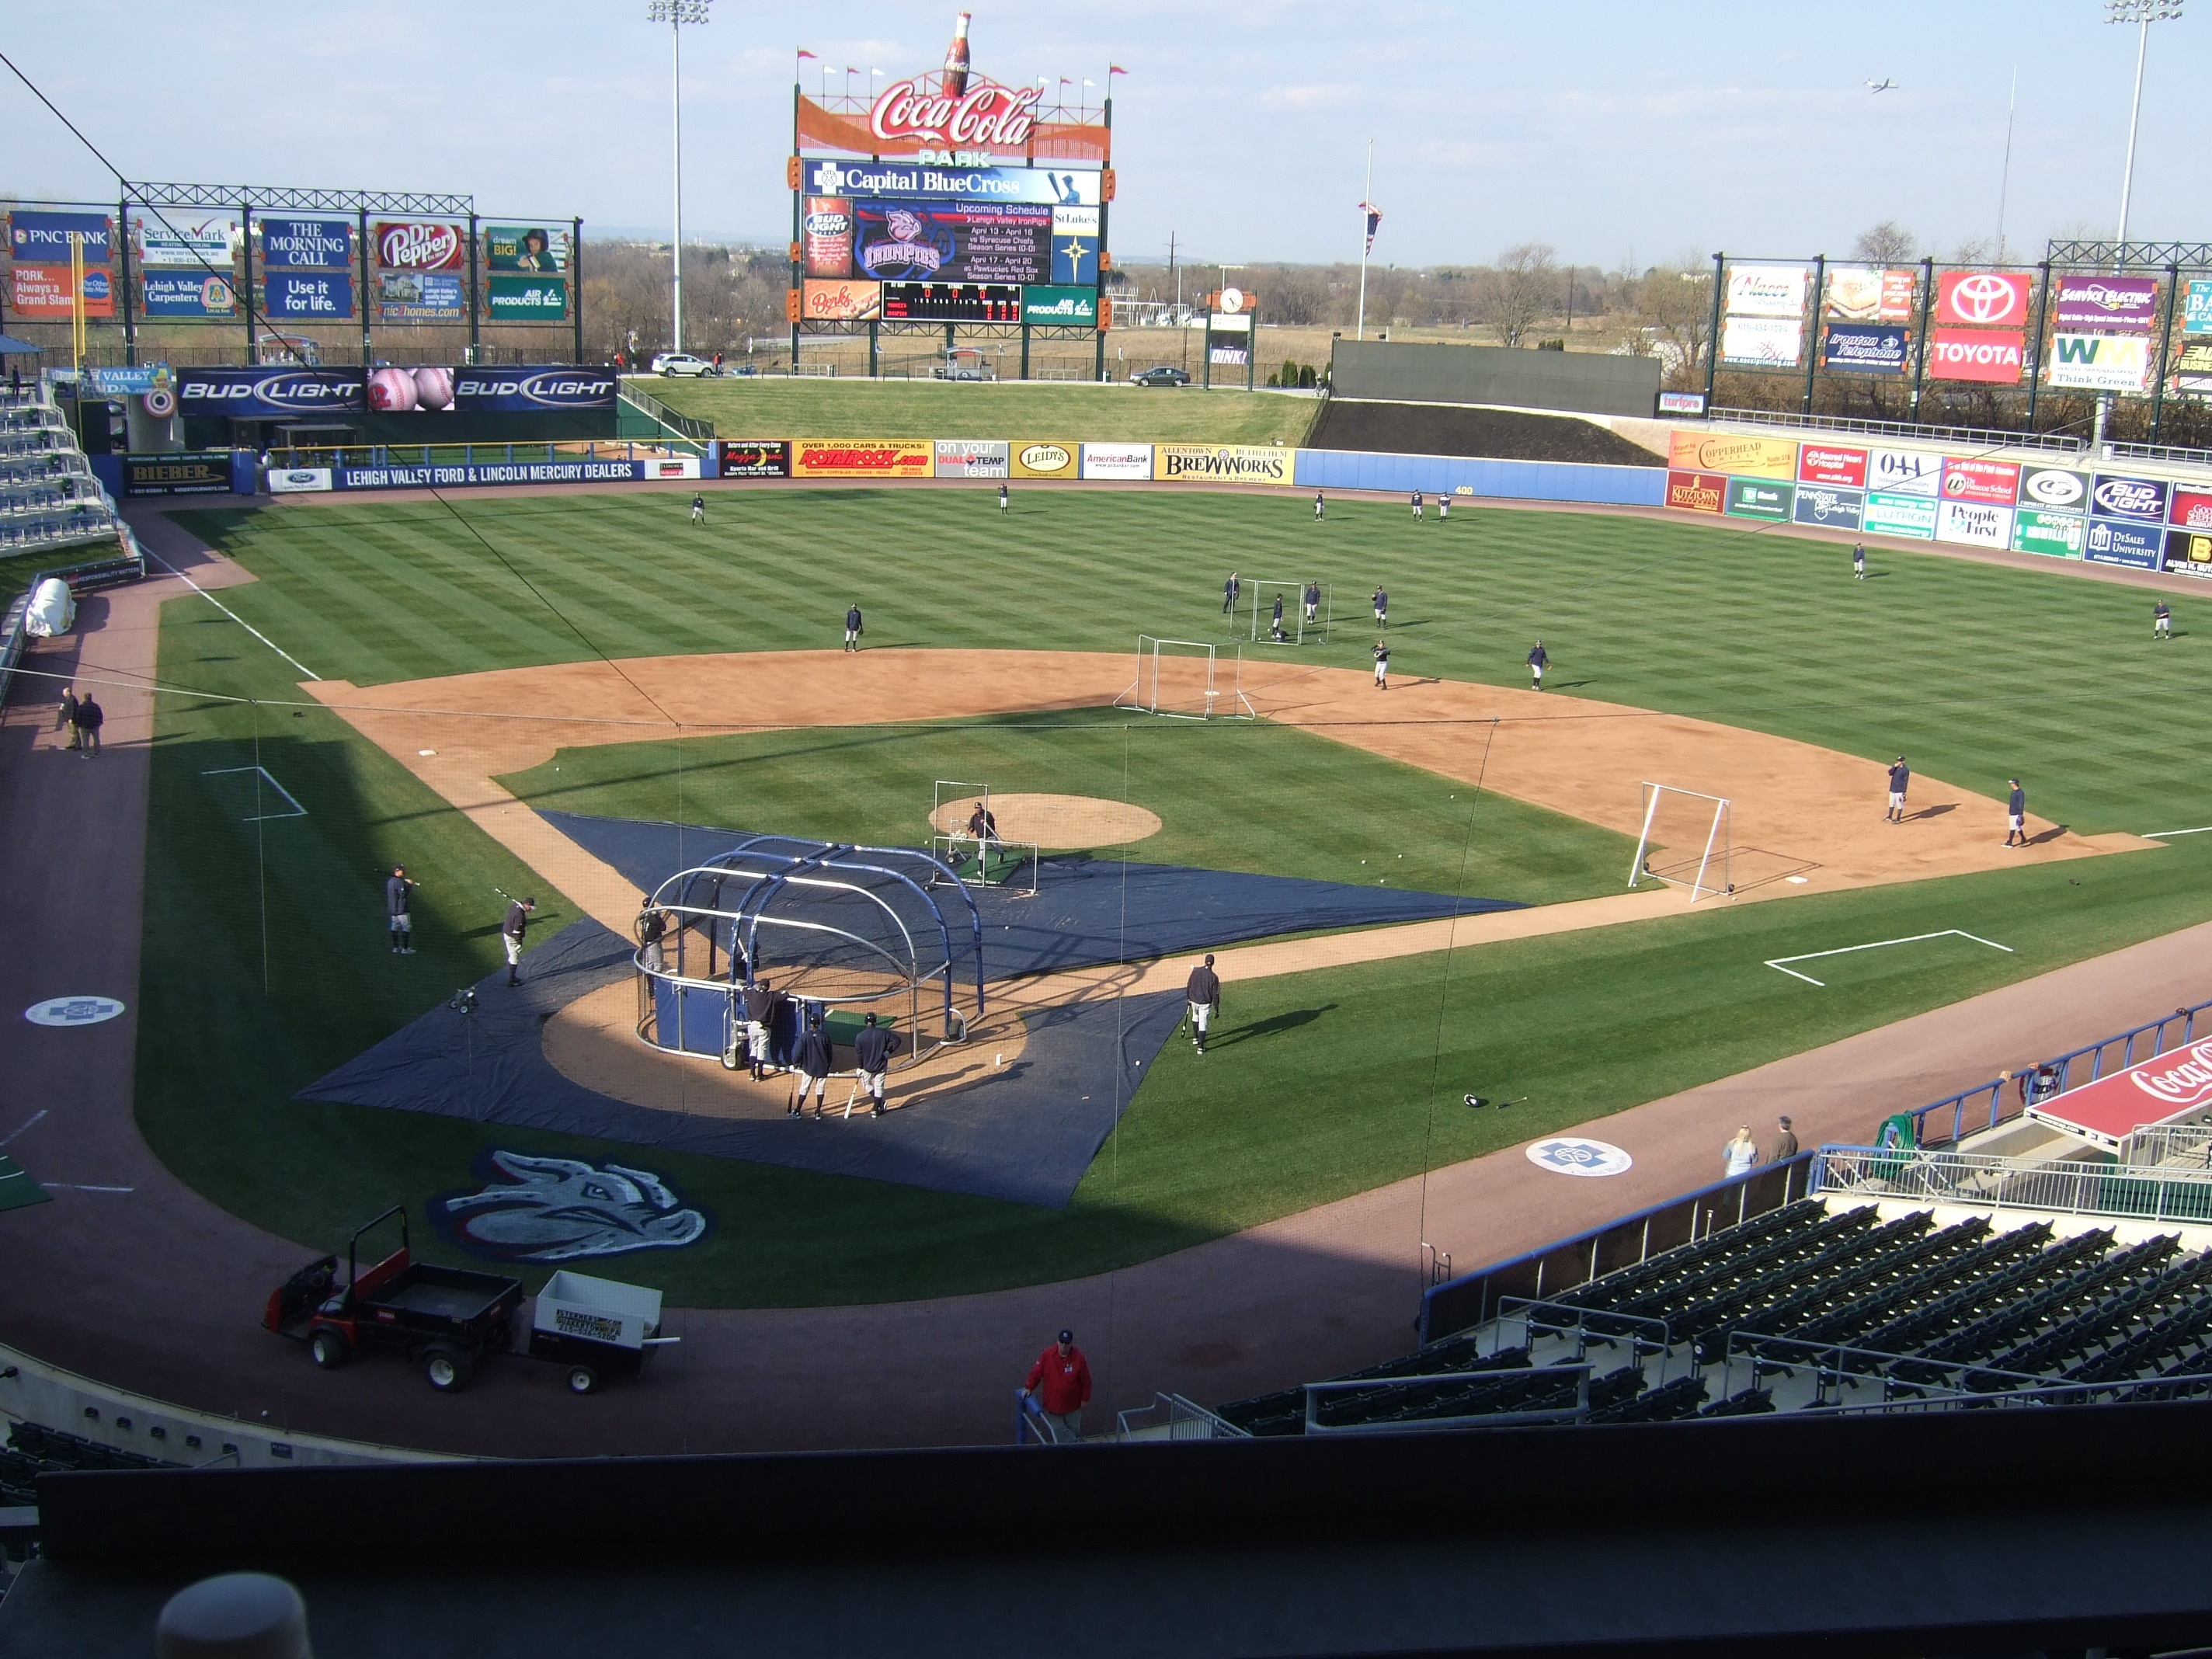 Coca-Cola Park in Allentown, home of the Lehigh Valley IronPigs